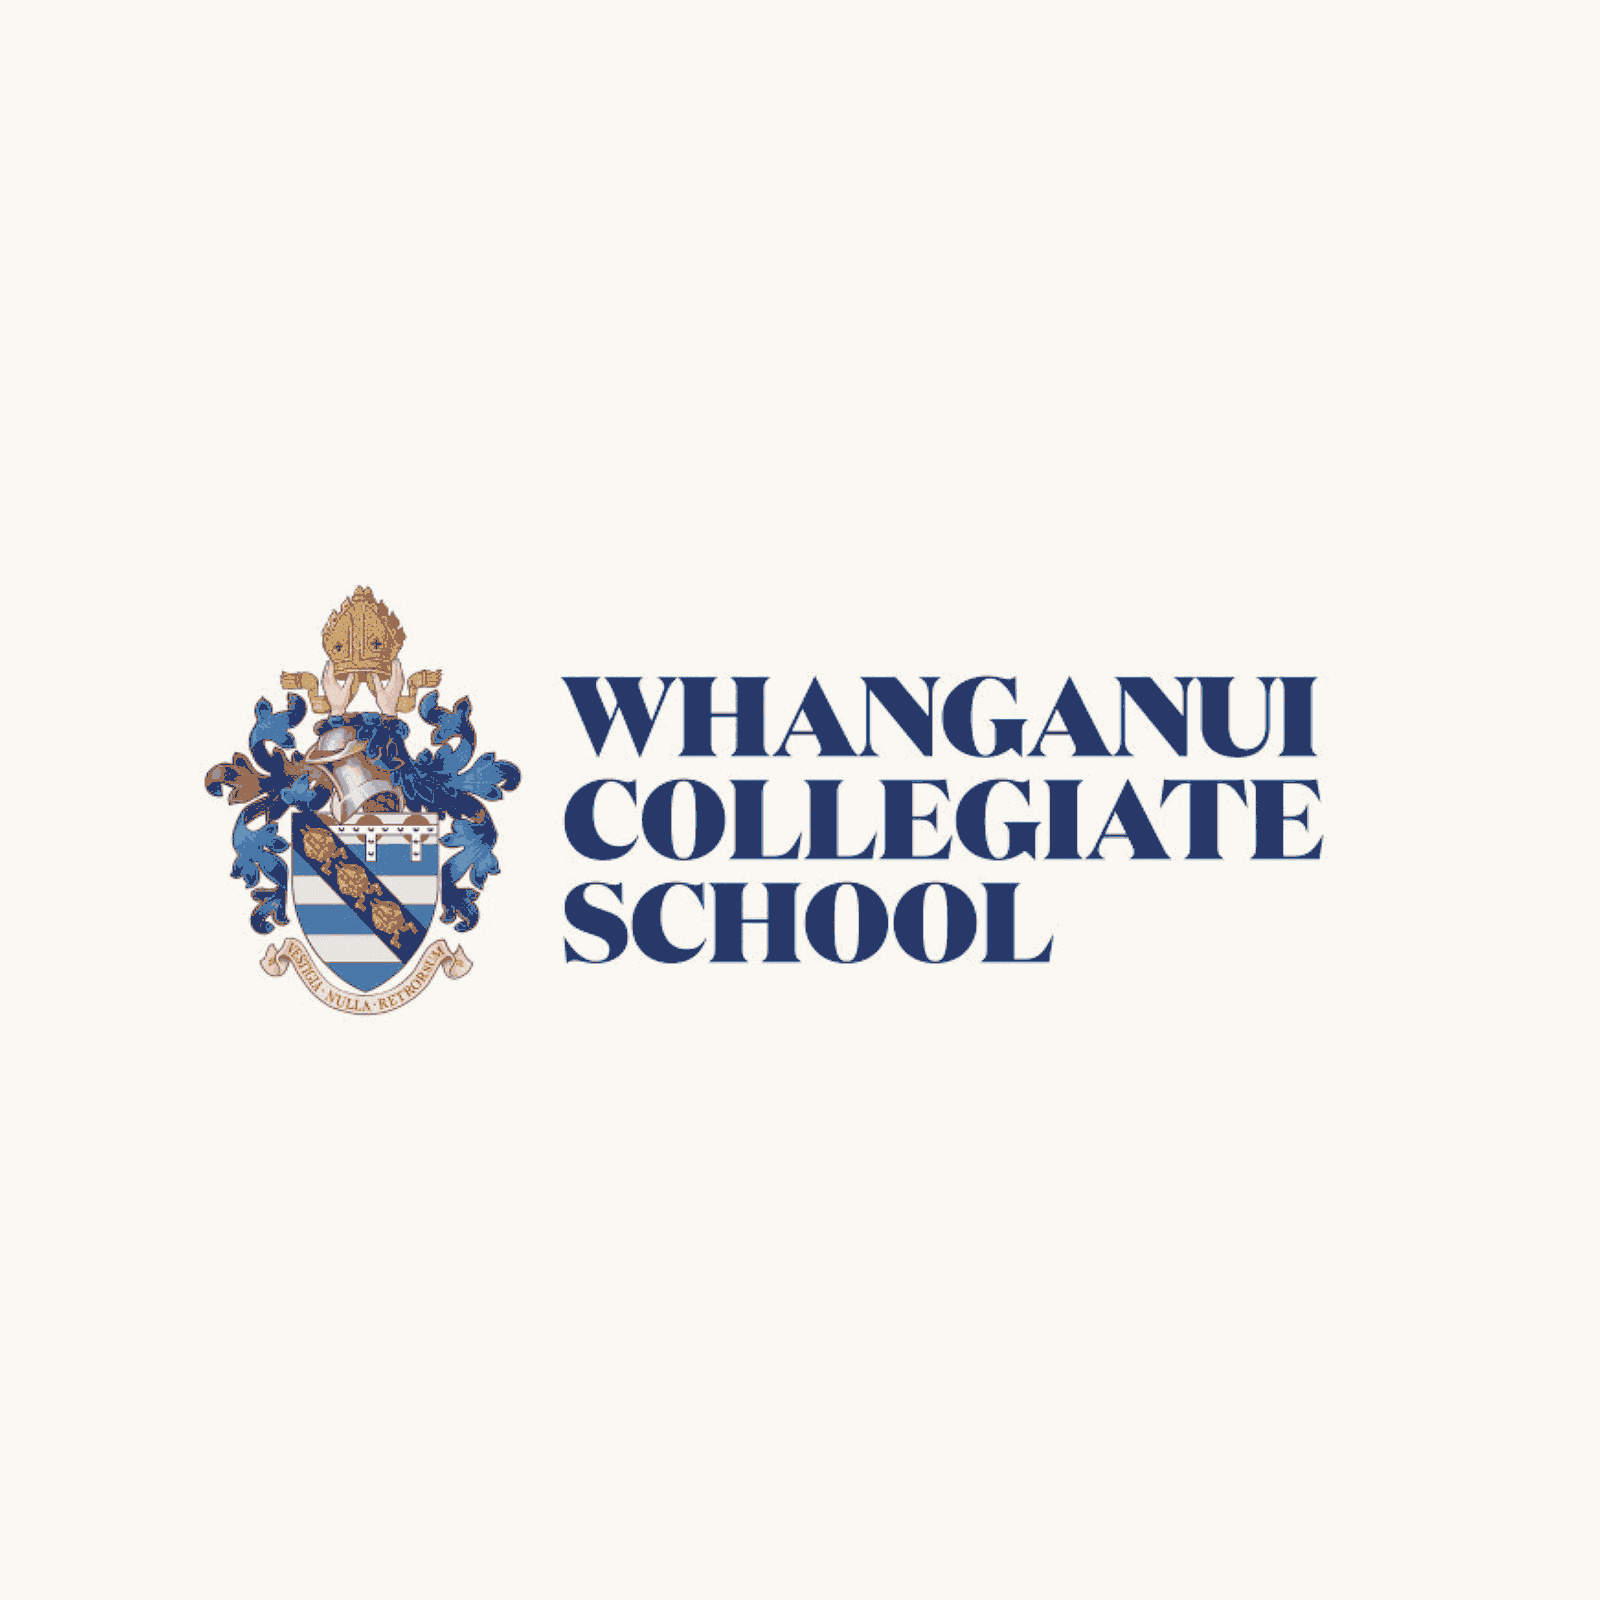 Gareth Edlin appointed General Manager Finance and Administration at Whanganui Collegiate School